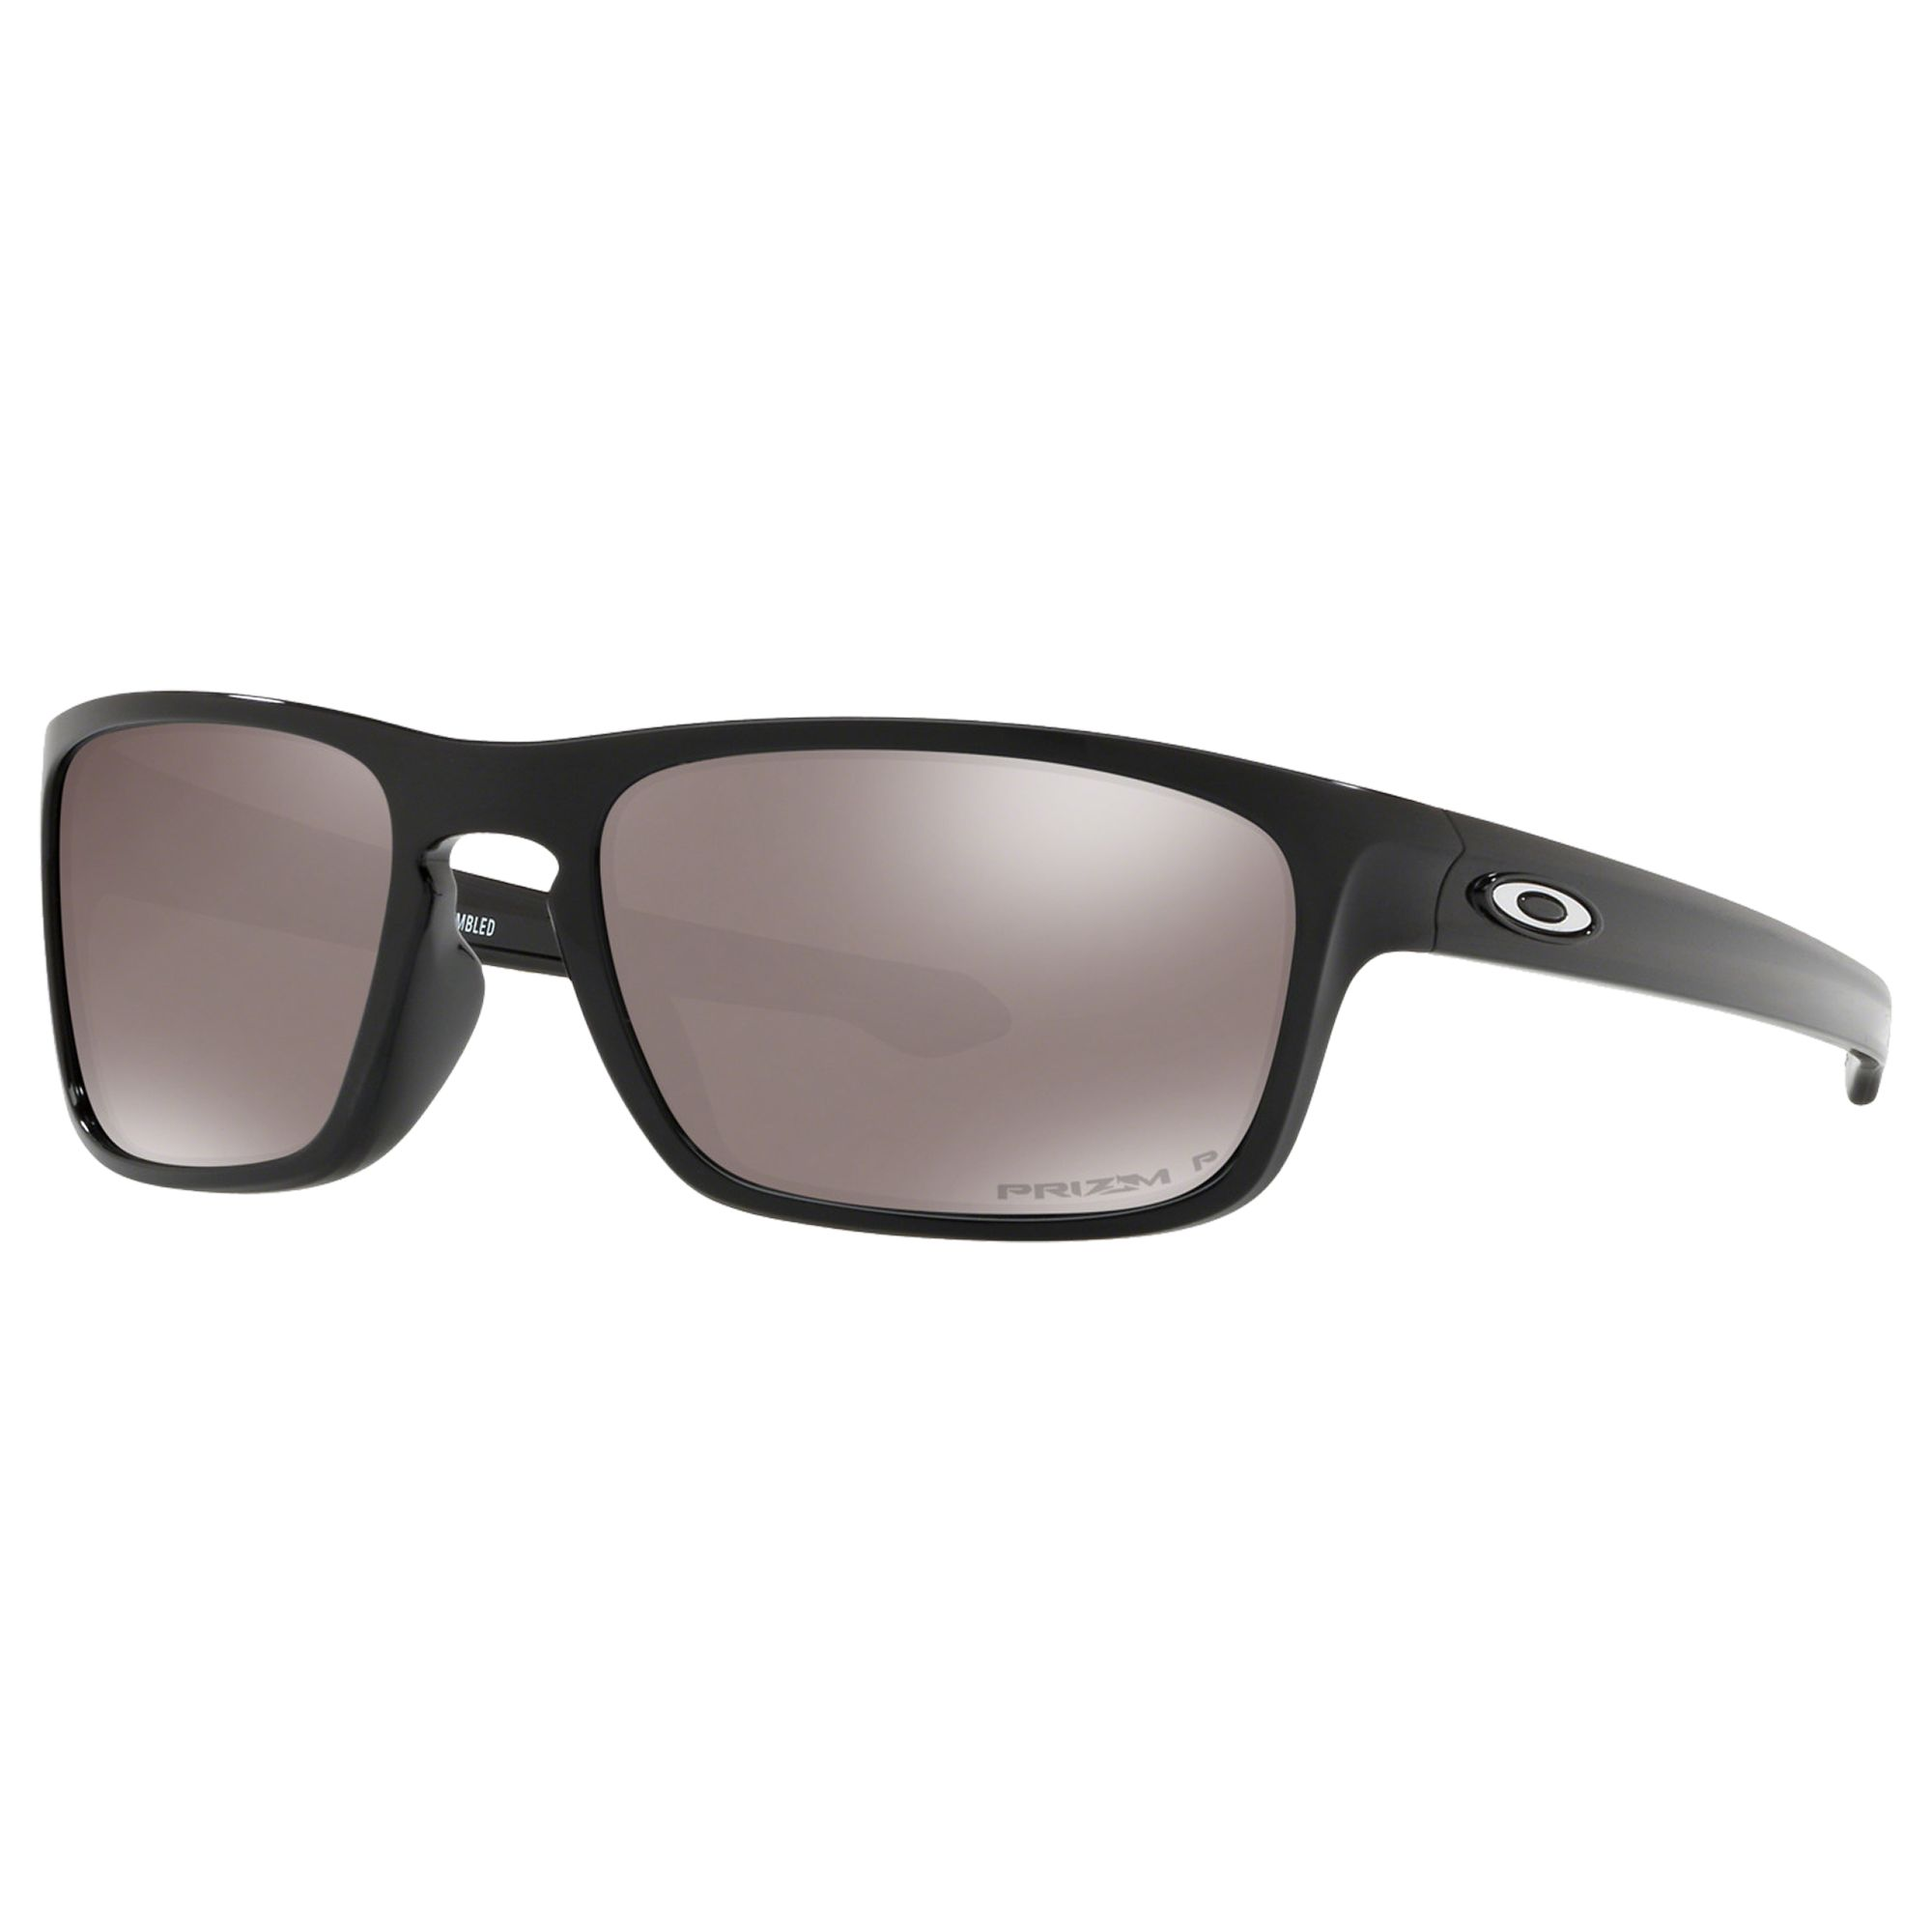 42827bd3f41f Oakley OO9408 Sliver Stealth Men's Polarised Sunglasses, Prizm Black at  John Lewis & Partners